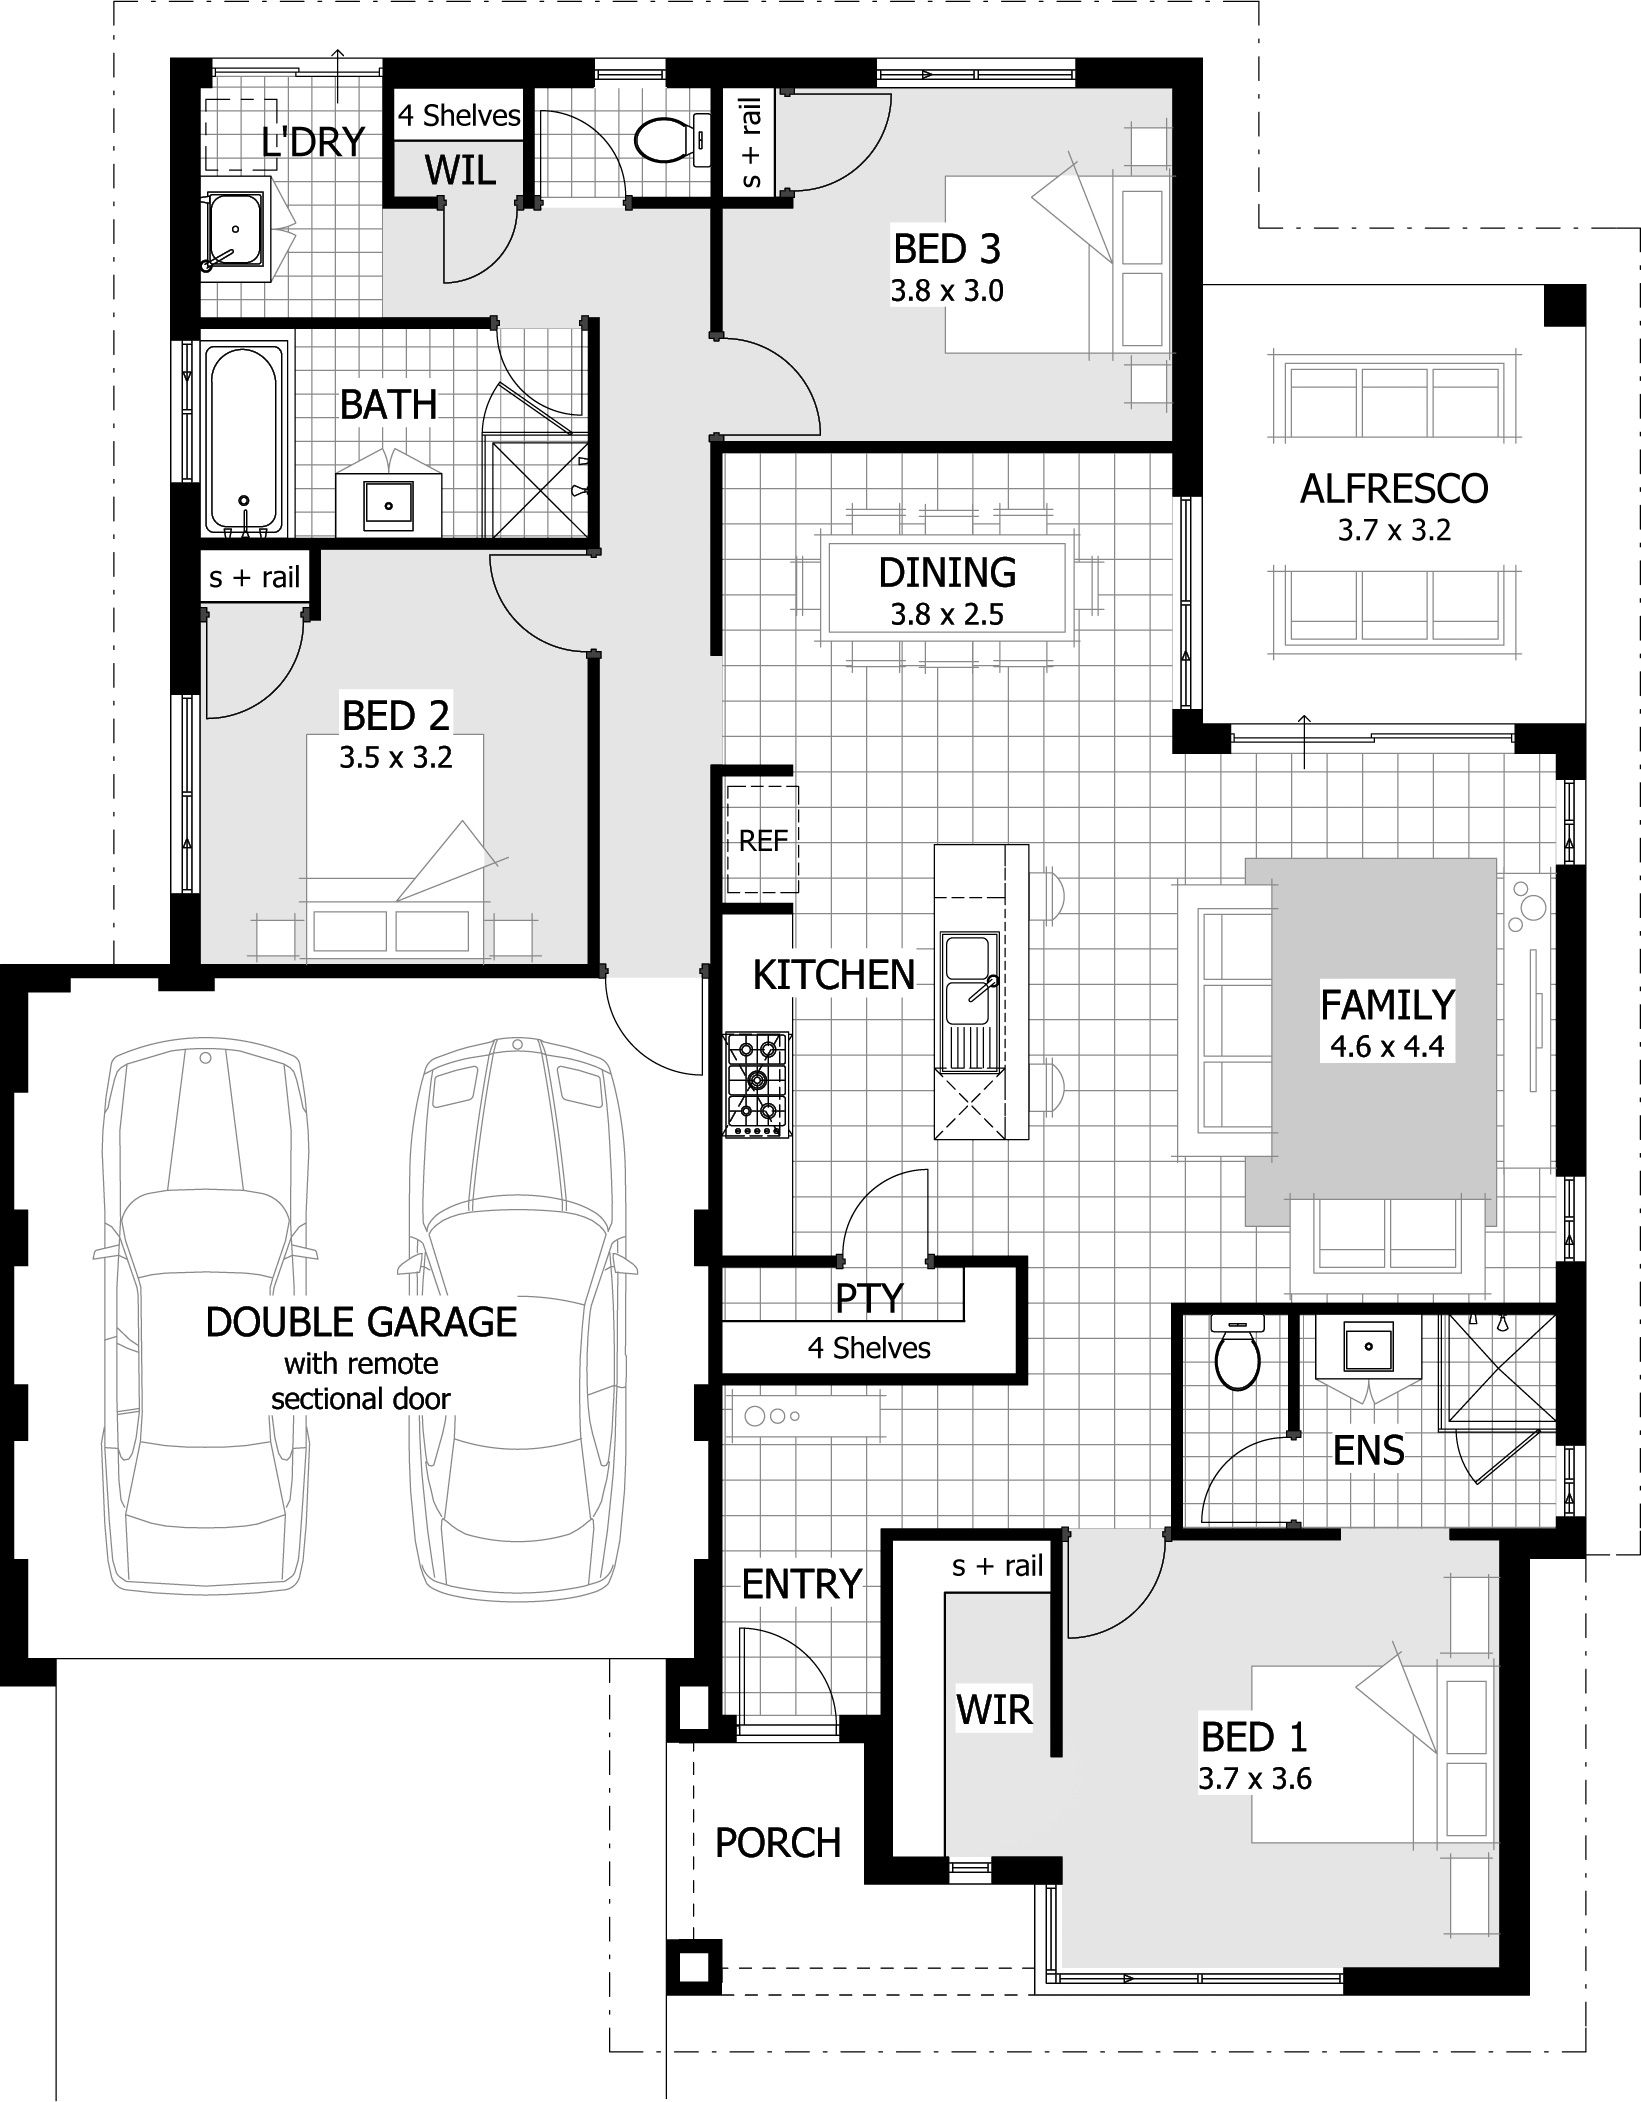 Contempo Collection Home Designs Celebration Homes Bedroom Floor Plans Unique Floor Plans House Plans